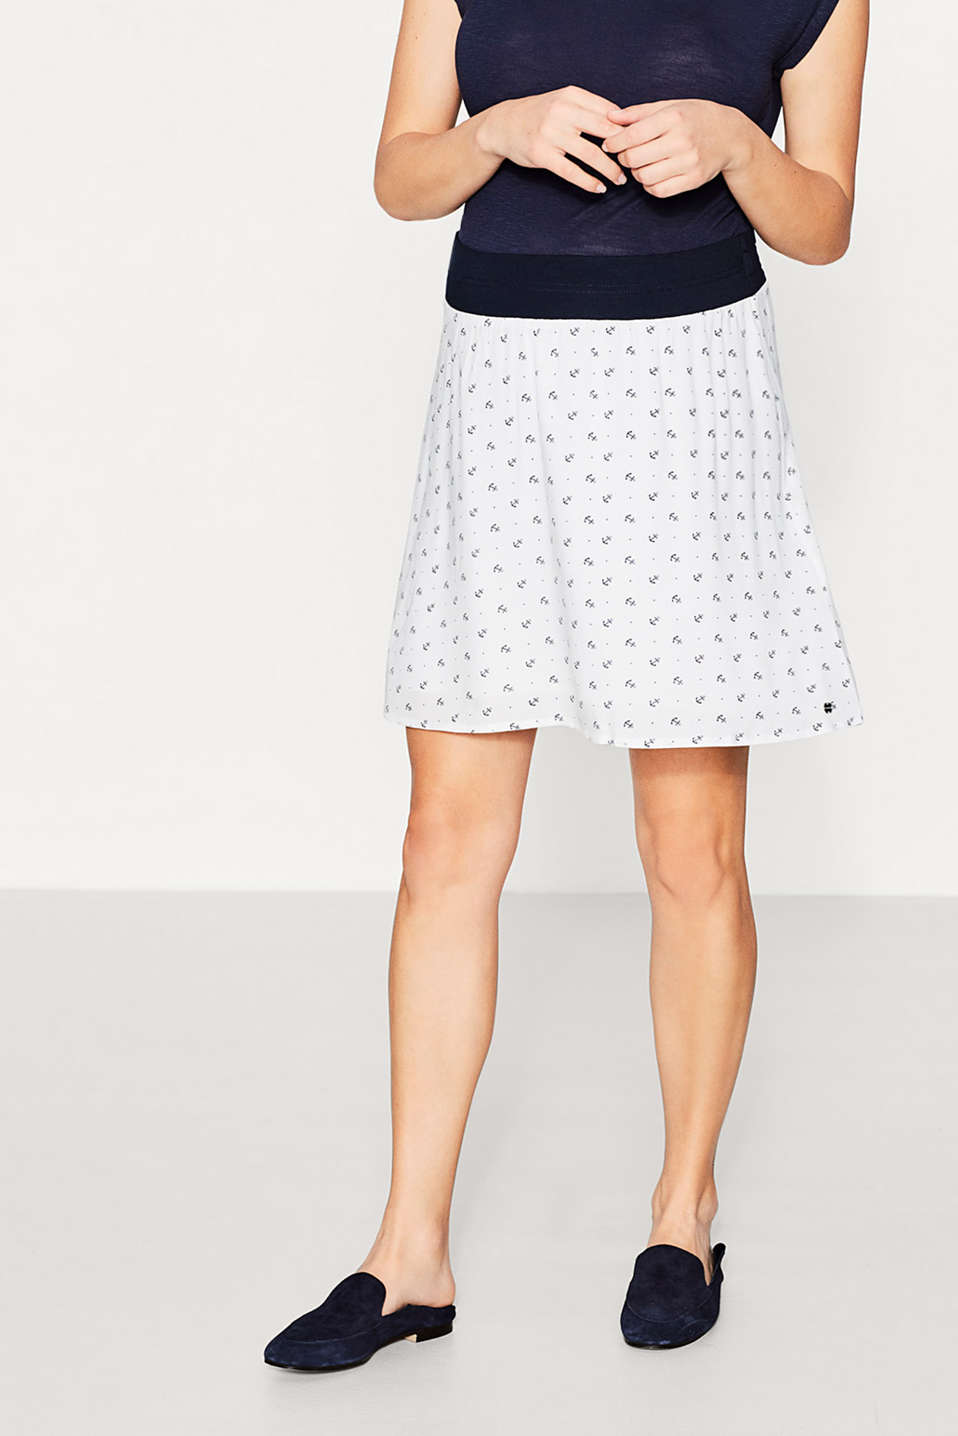 Flowing print skirt + under-bump waistband